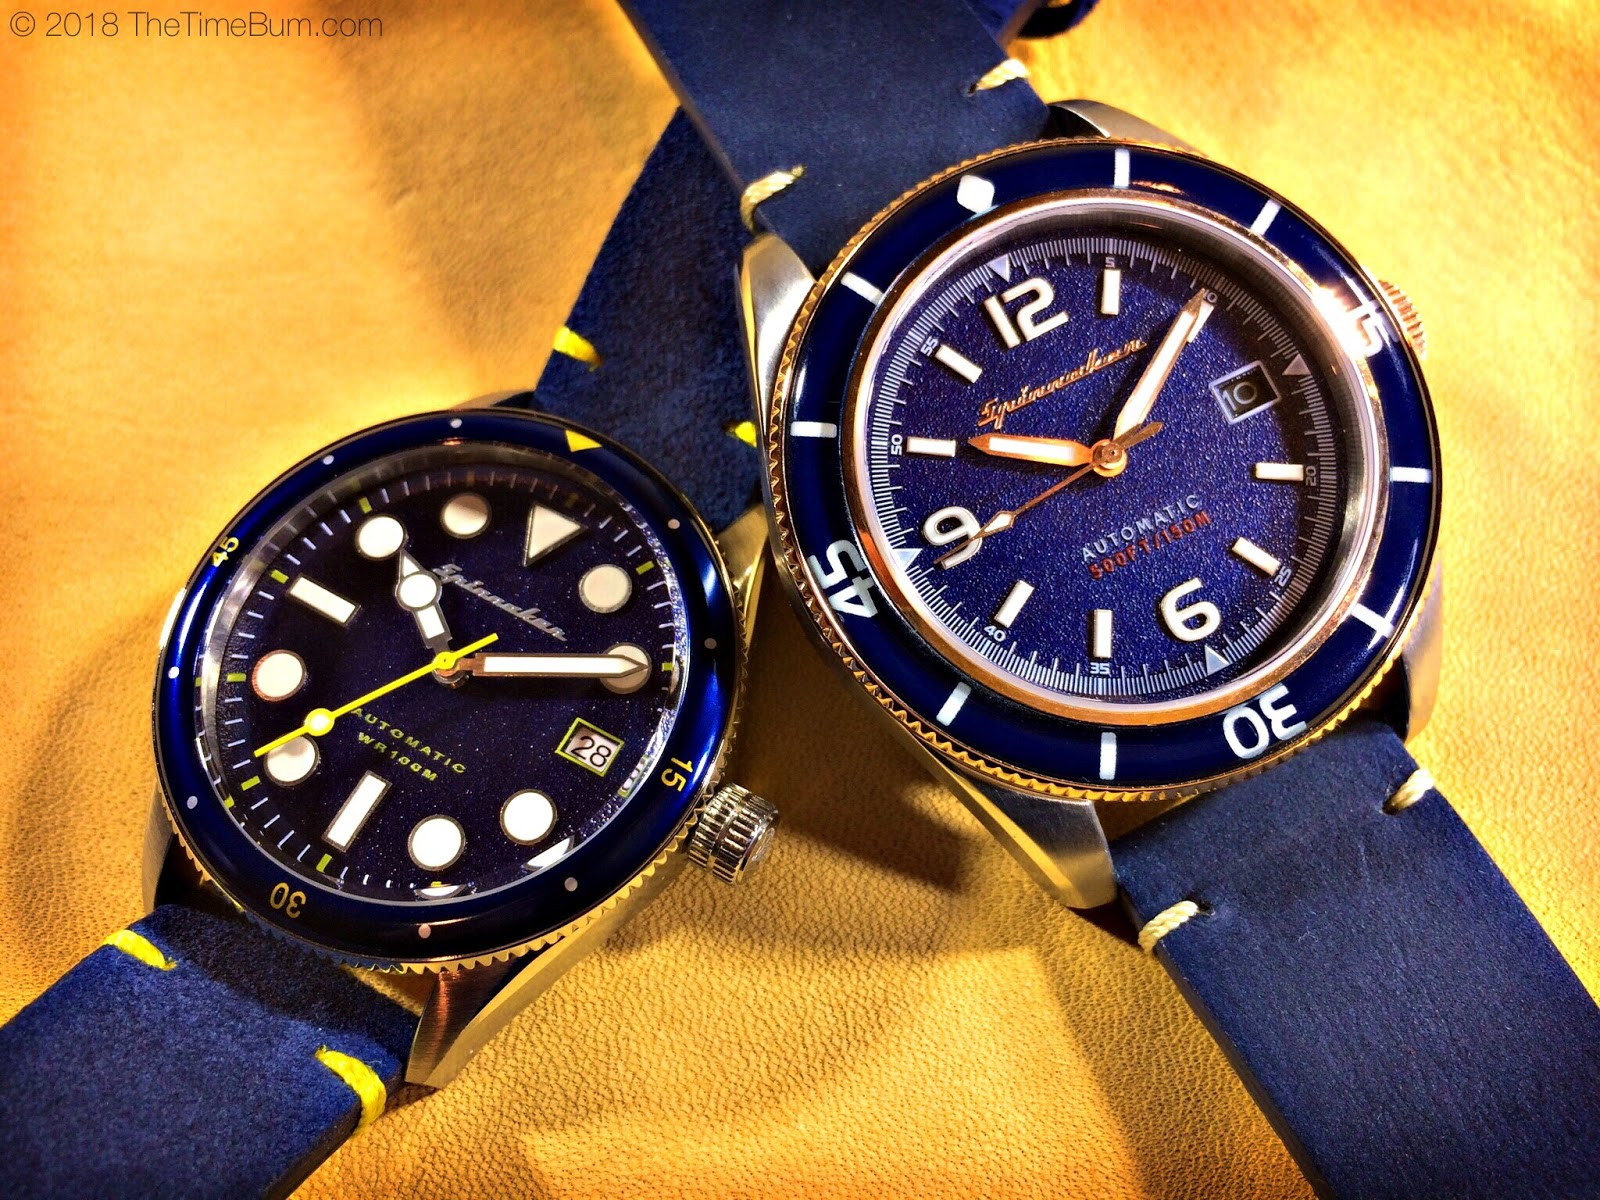 TheTimeBum - Double Spinnaker Giveaway! | Borealis Watch Forum: Open